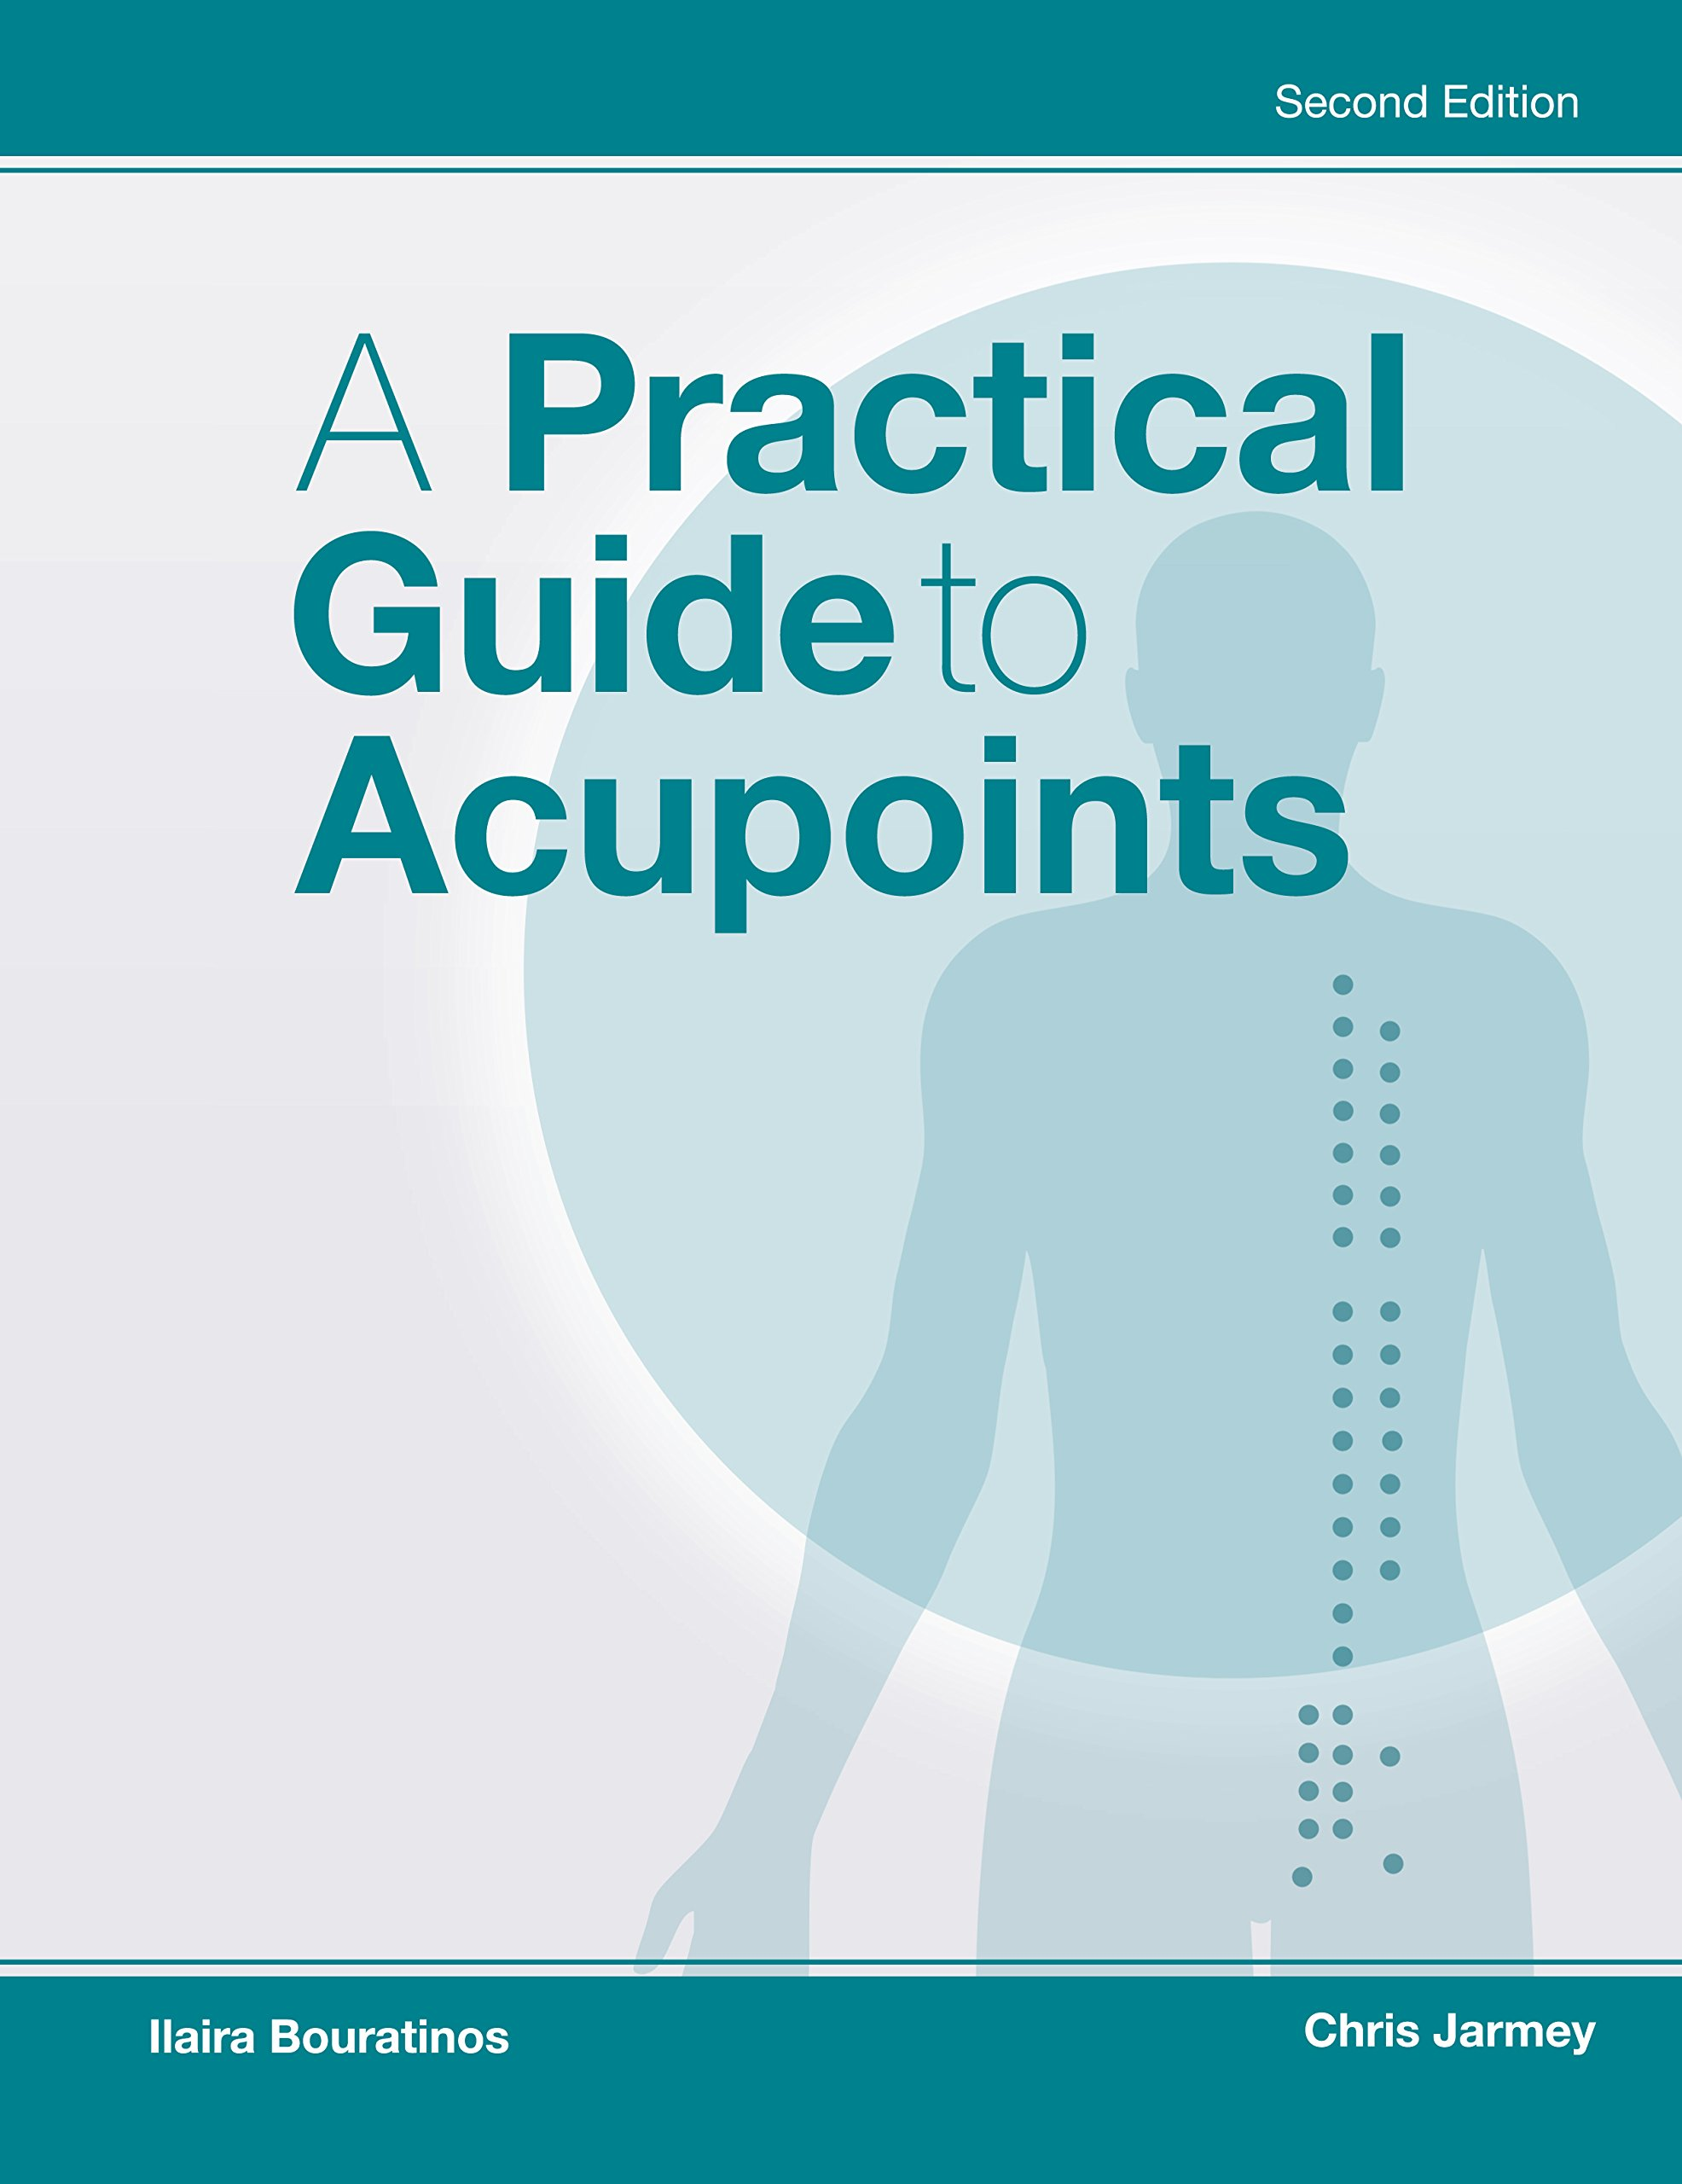 a_practical_guide_to_acupoints_2